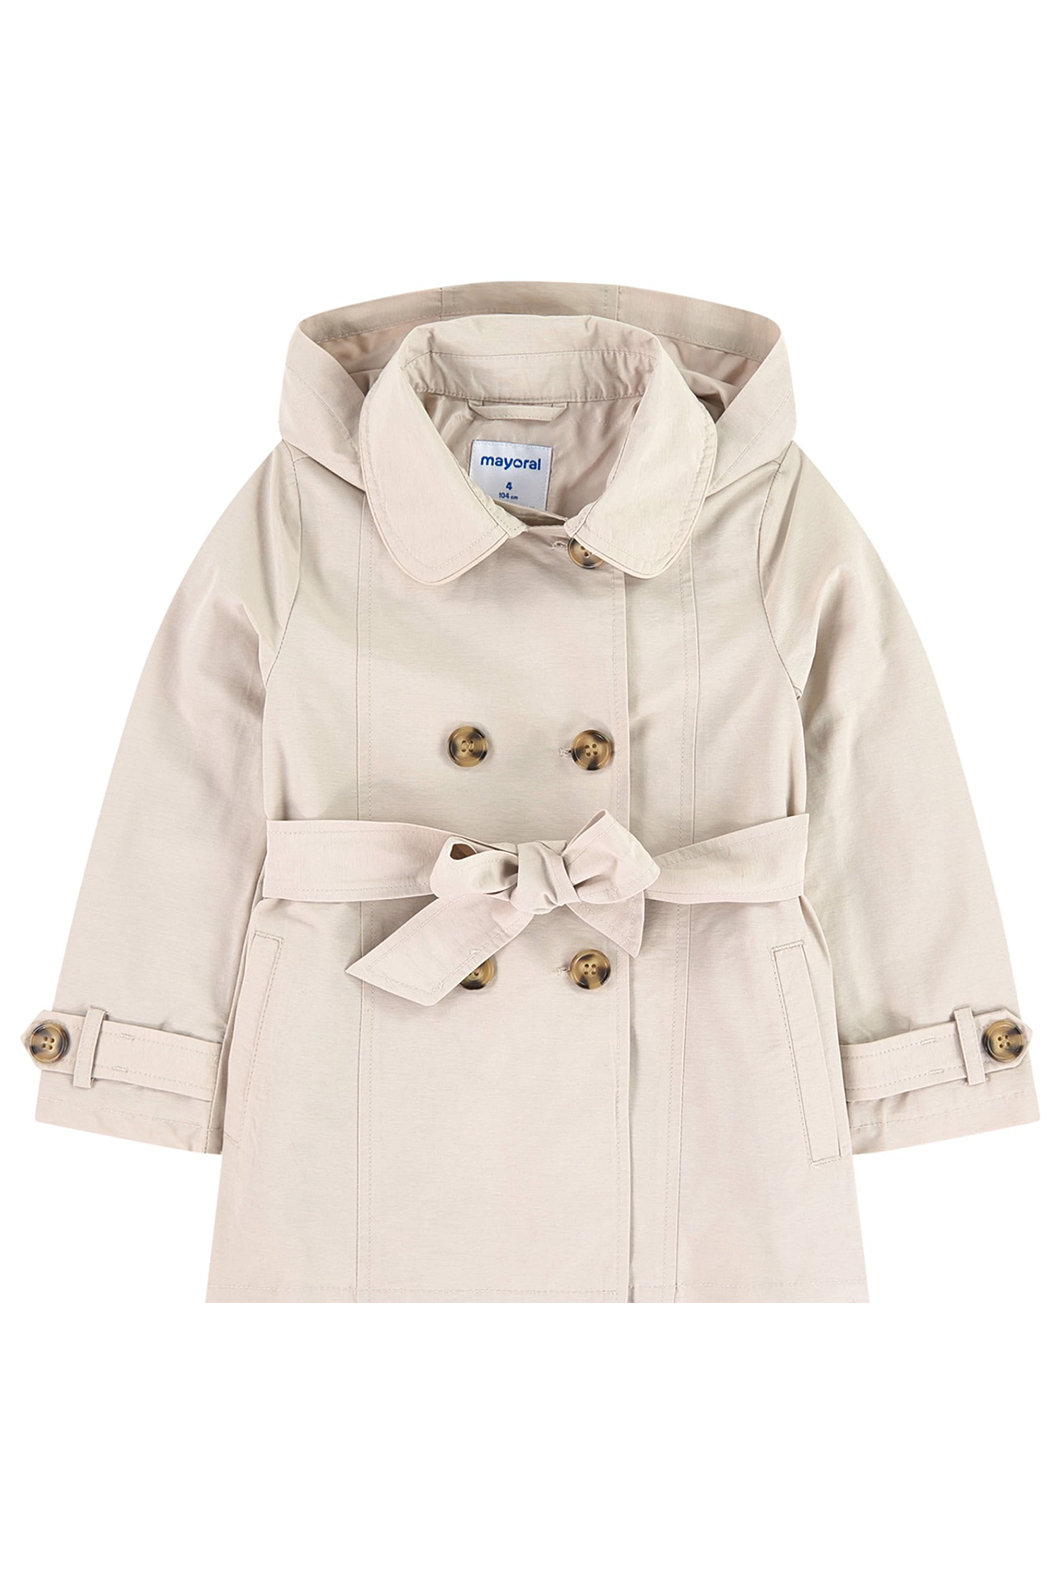 Mayoral Beige Trenchcoat - Main Image